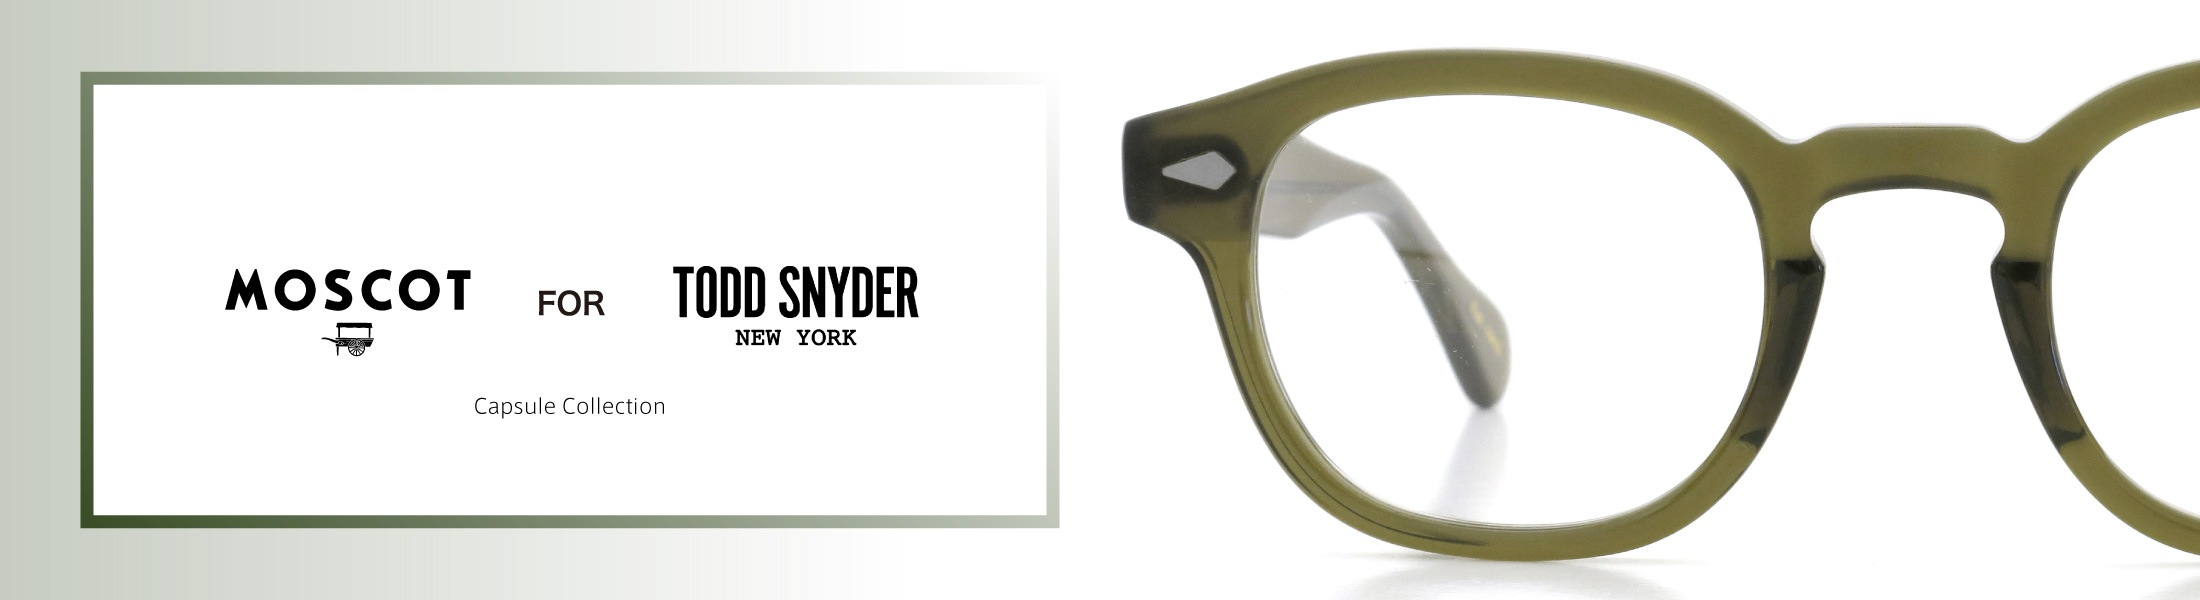 TODD SNYDER×MOSCOT コラボレーション